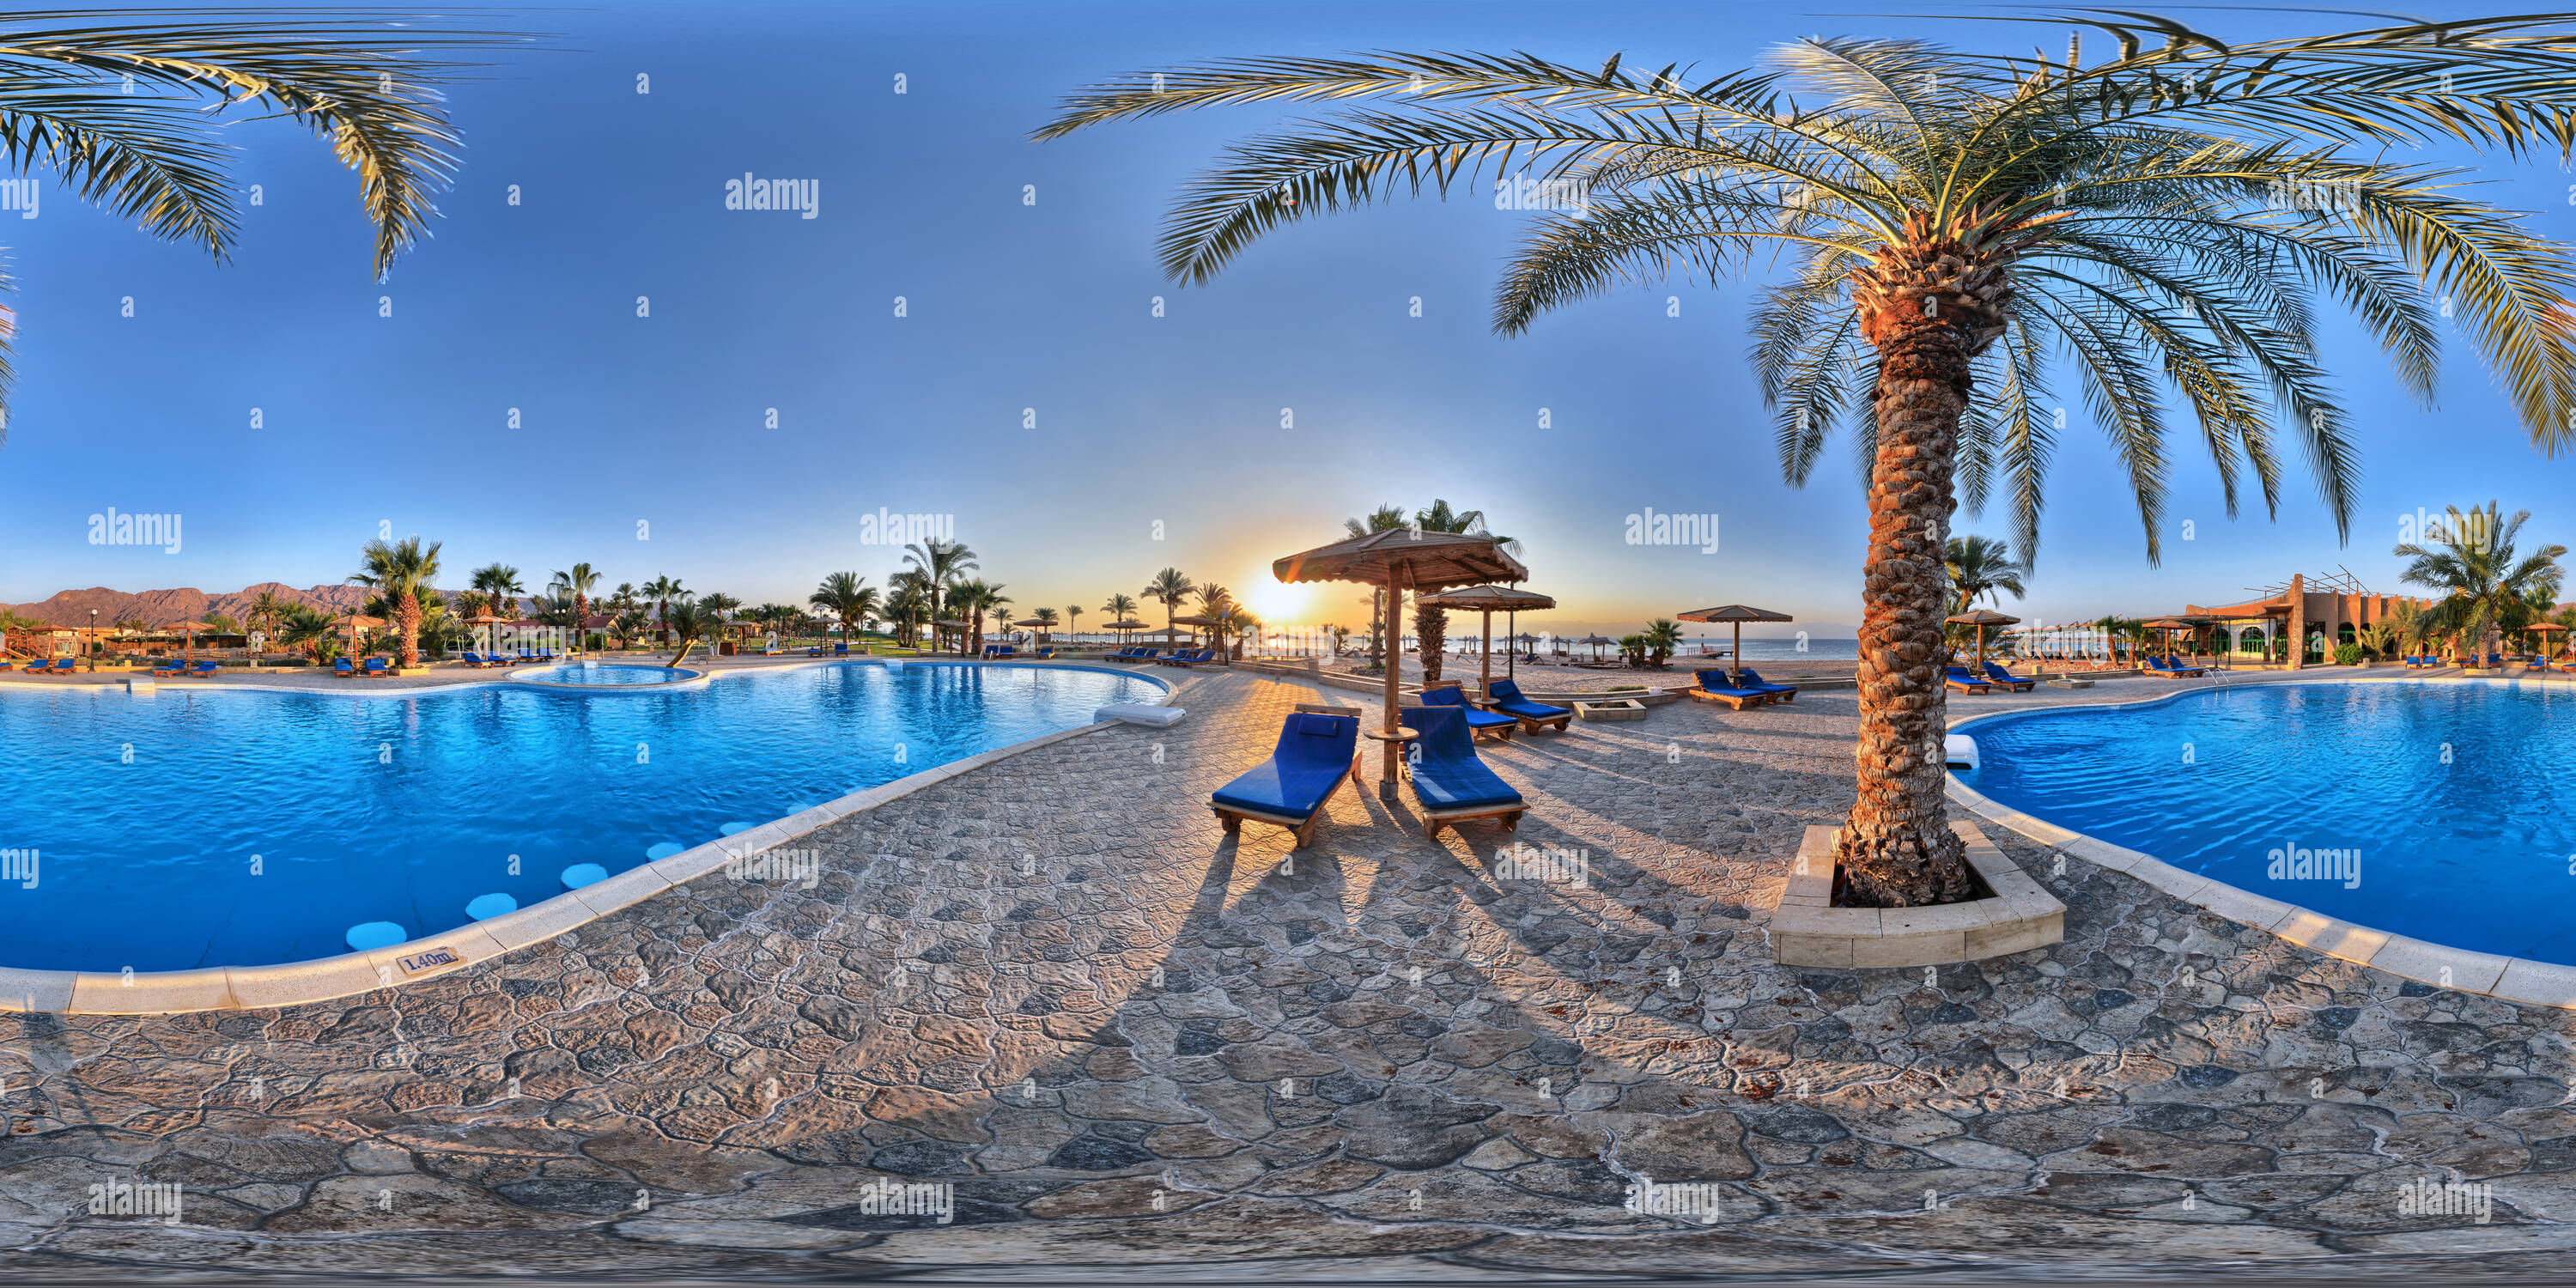 Helnan Nuweiba Swimming Pool - Stock Image